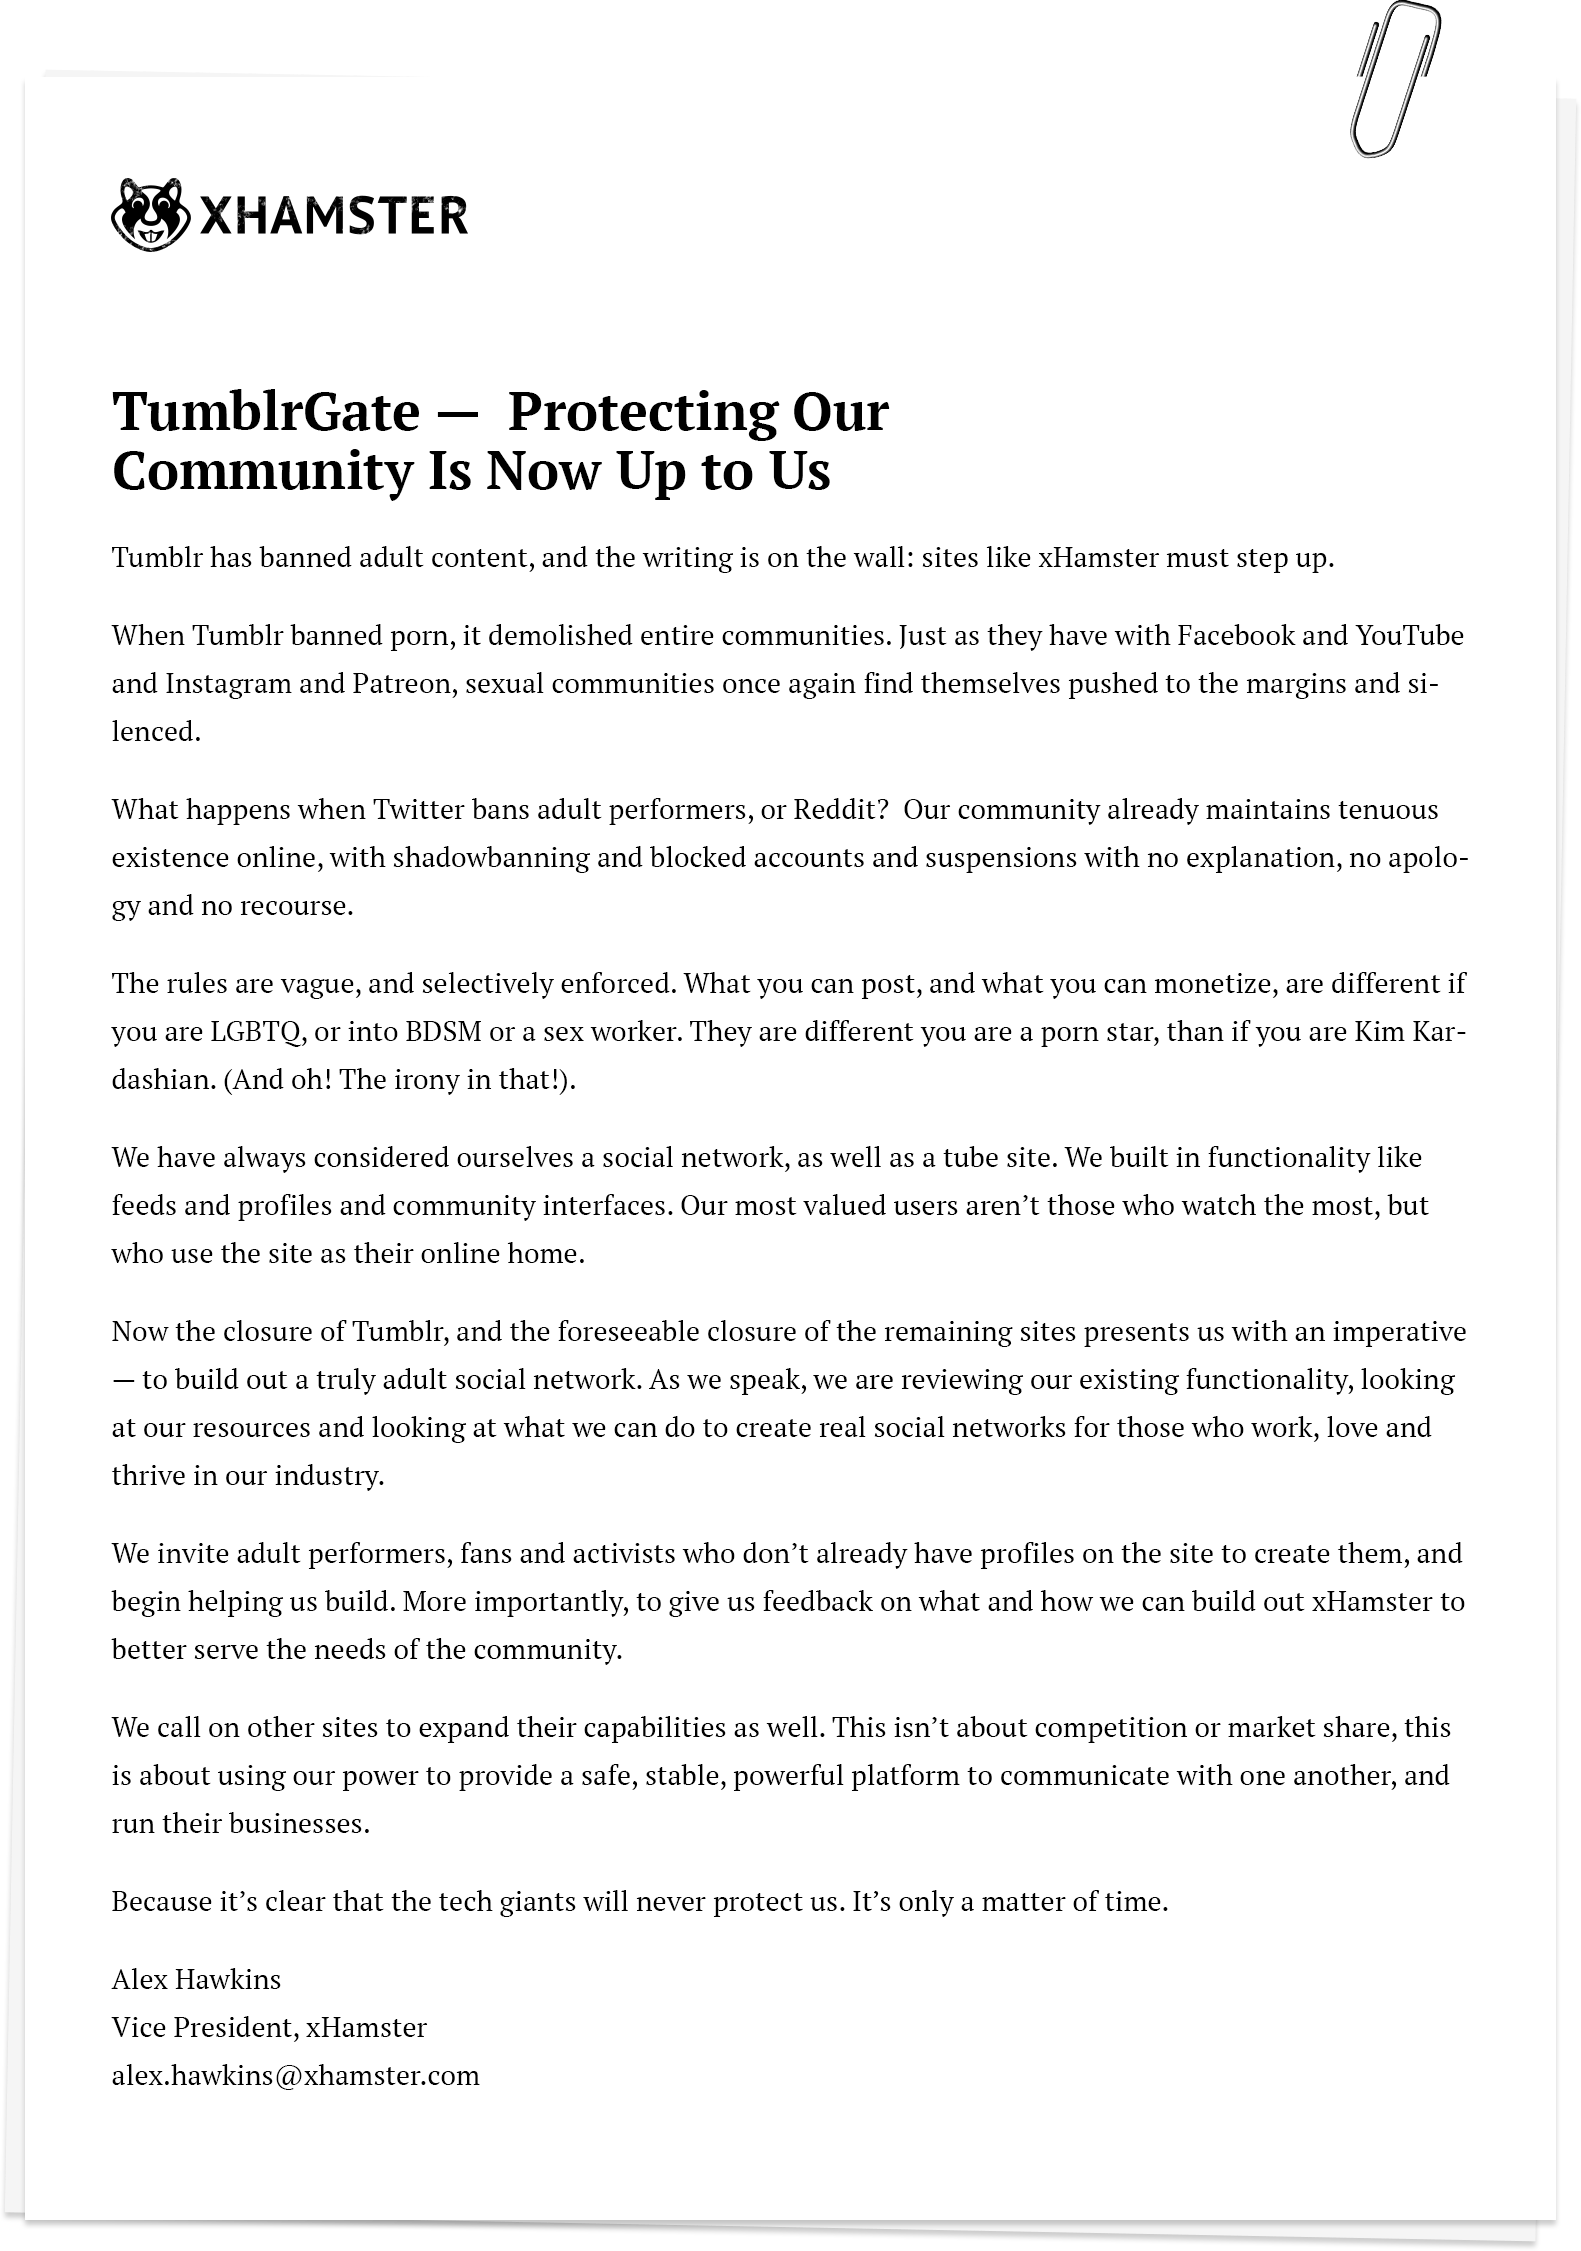 #TumblrGate Statement